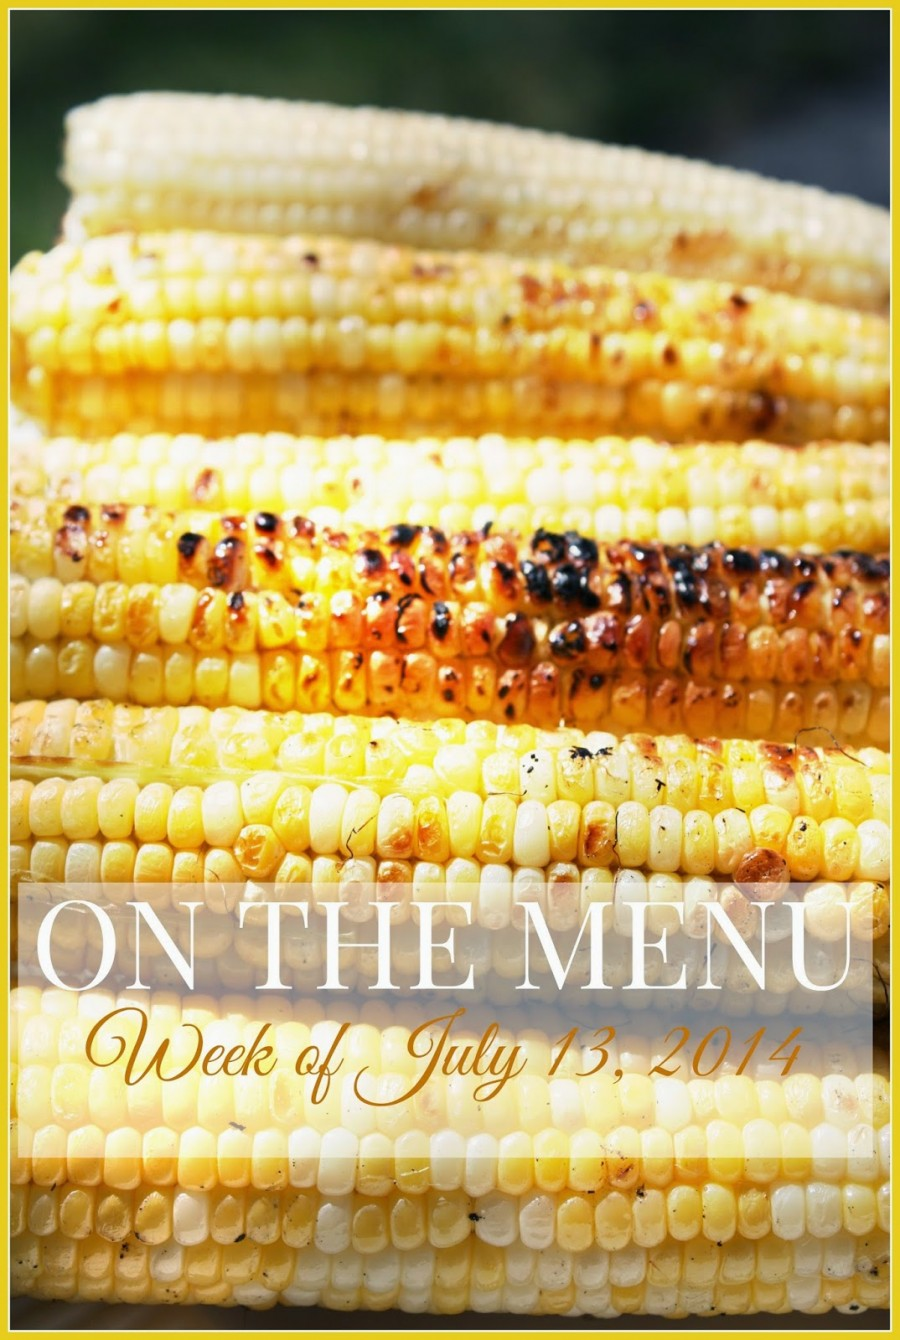 ON THE MENU WEEK OF JULY 14, 2014